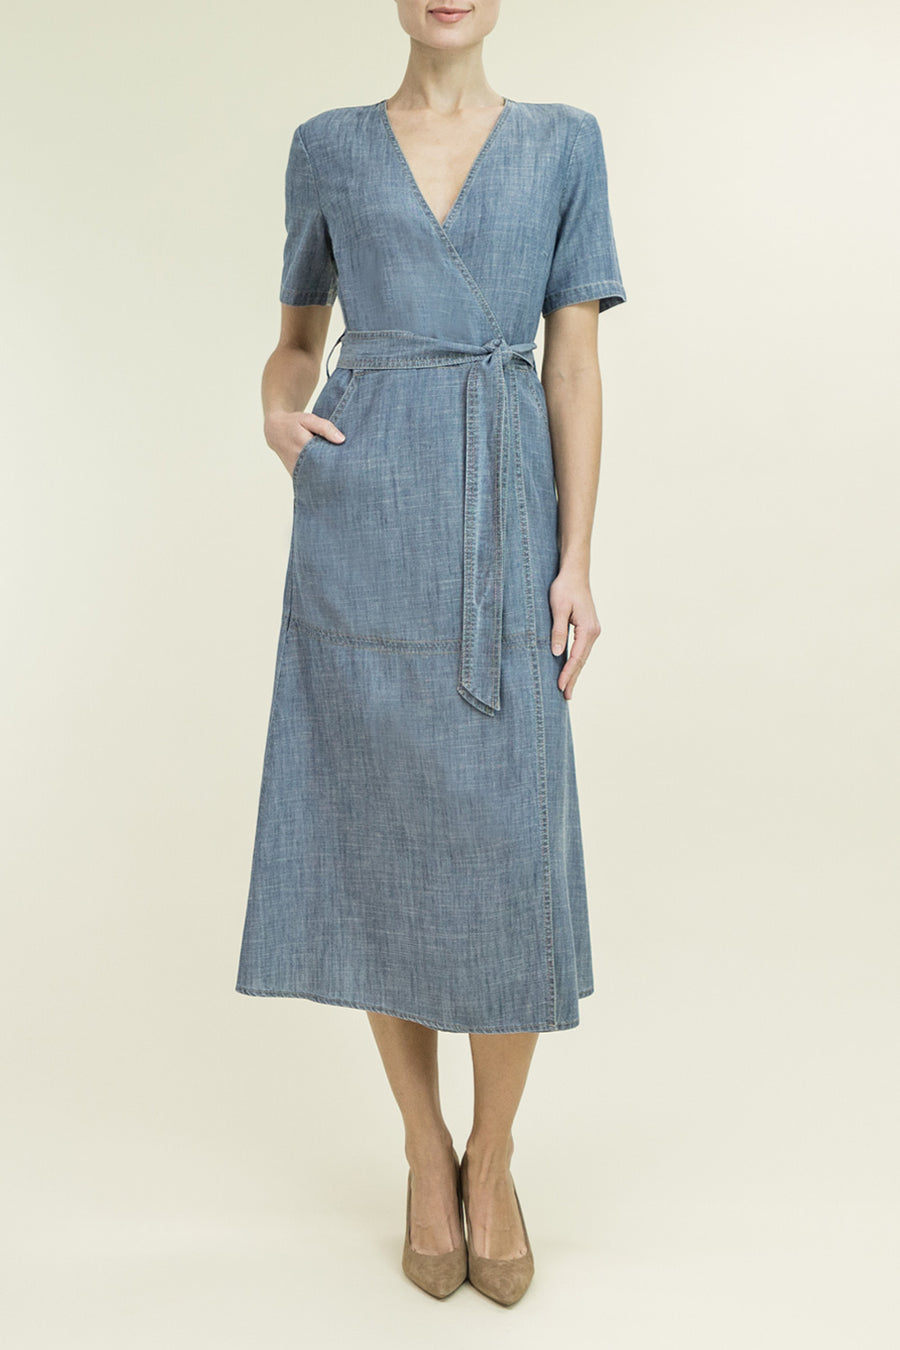 DAPHINE WRAP DRESS - level99jeans